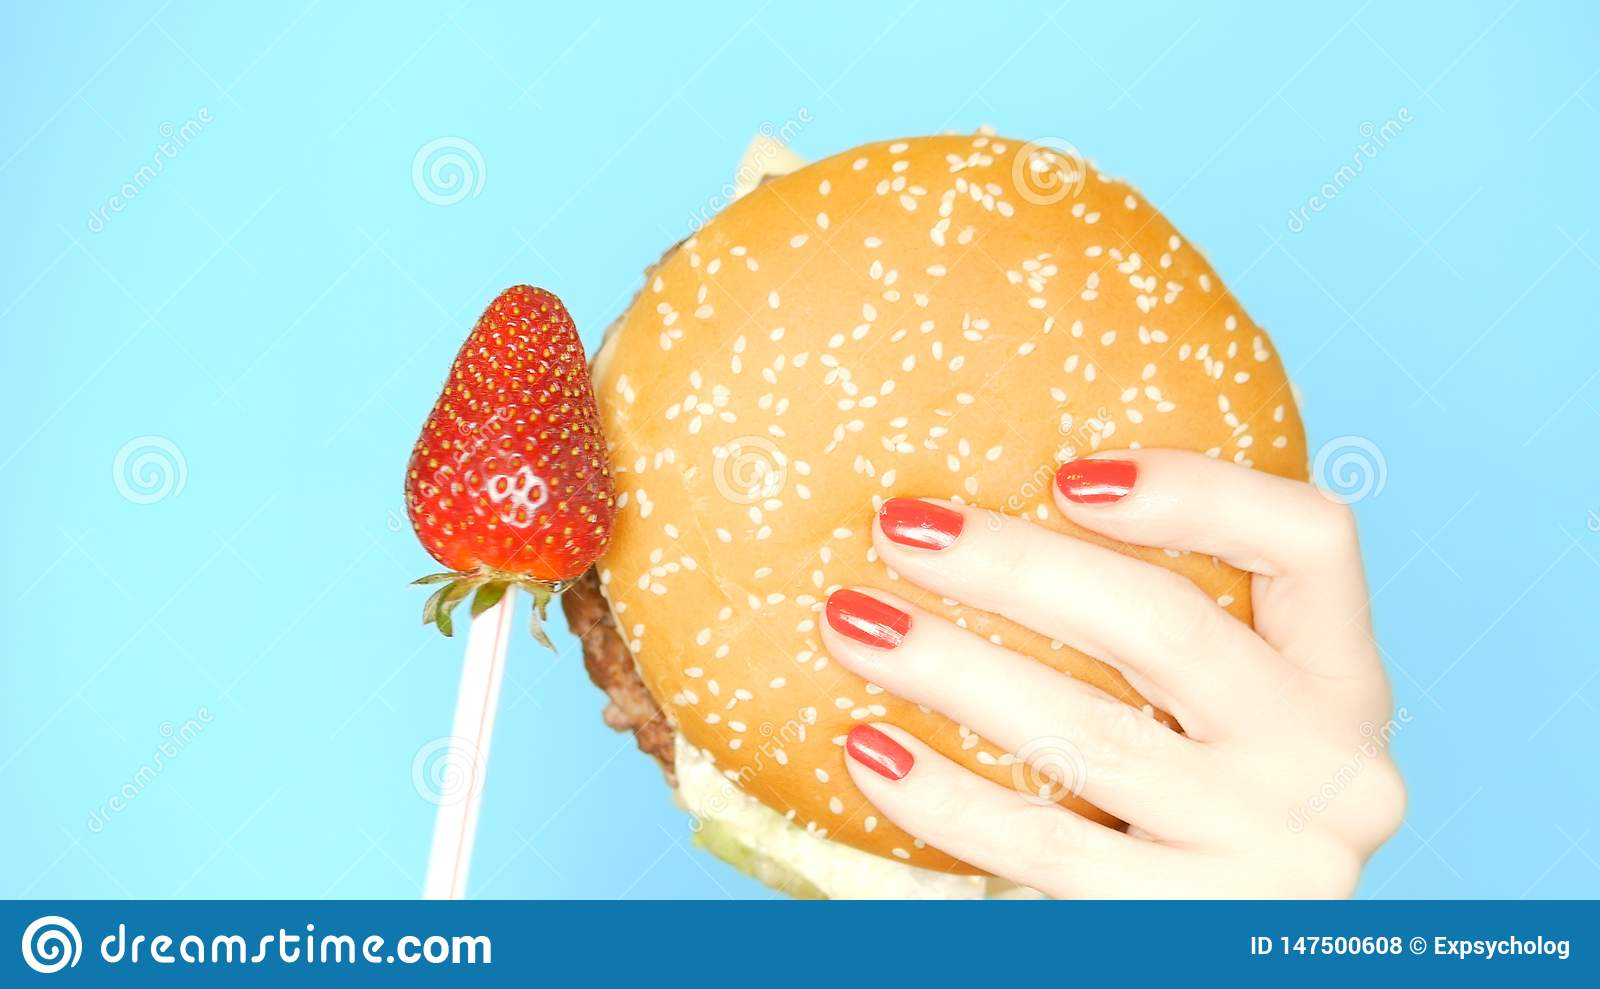 Concept of healthy and unhealthy food. Strawberries against hamburgers on a bright blue background. female hands with